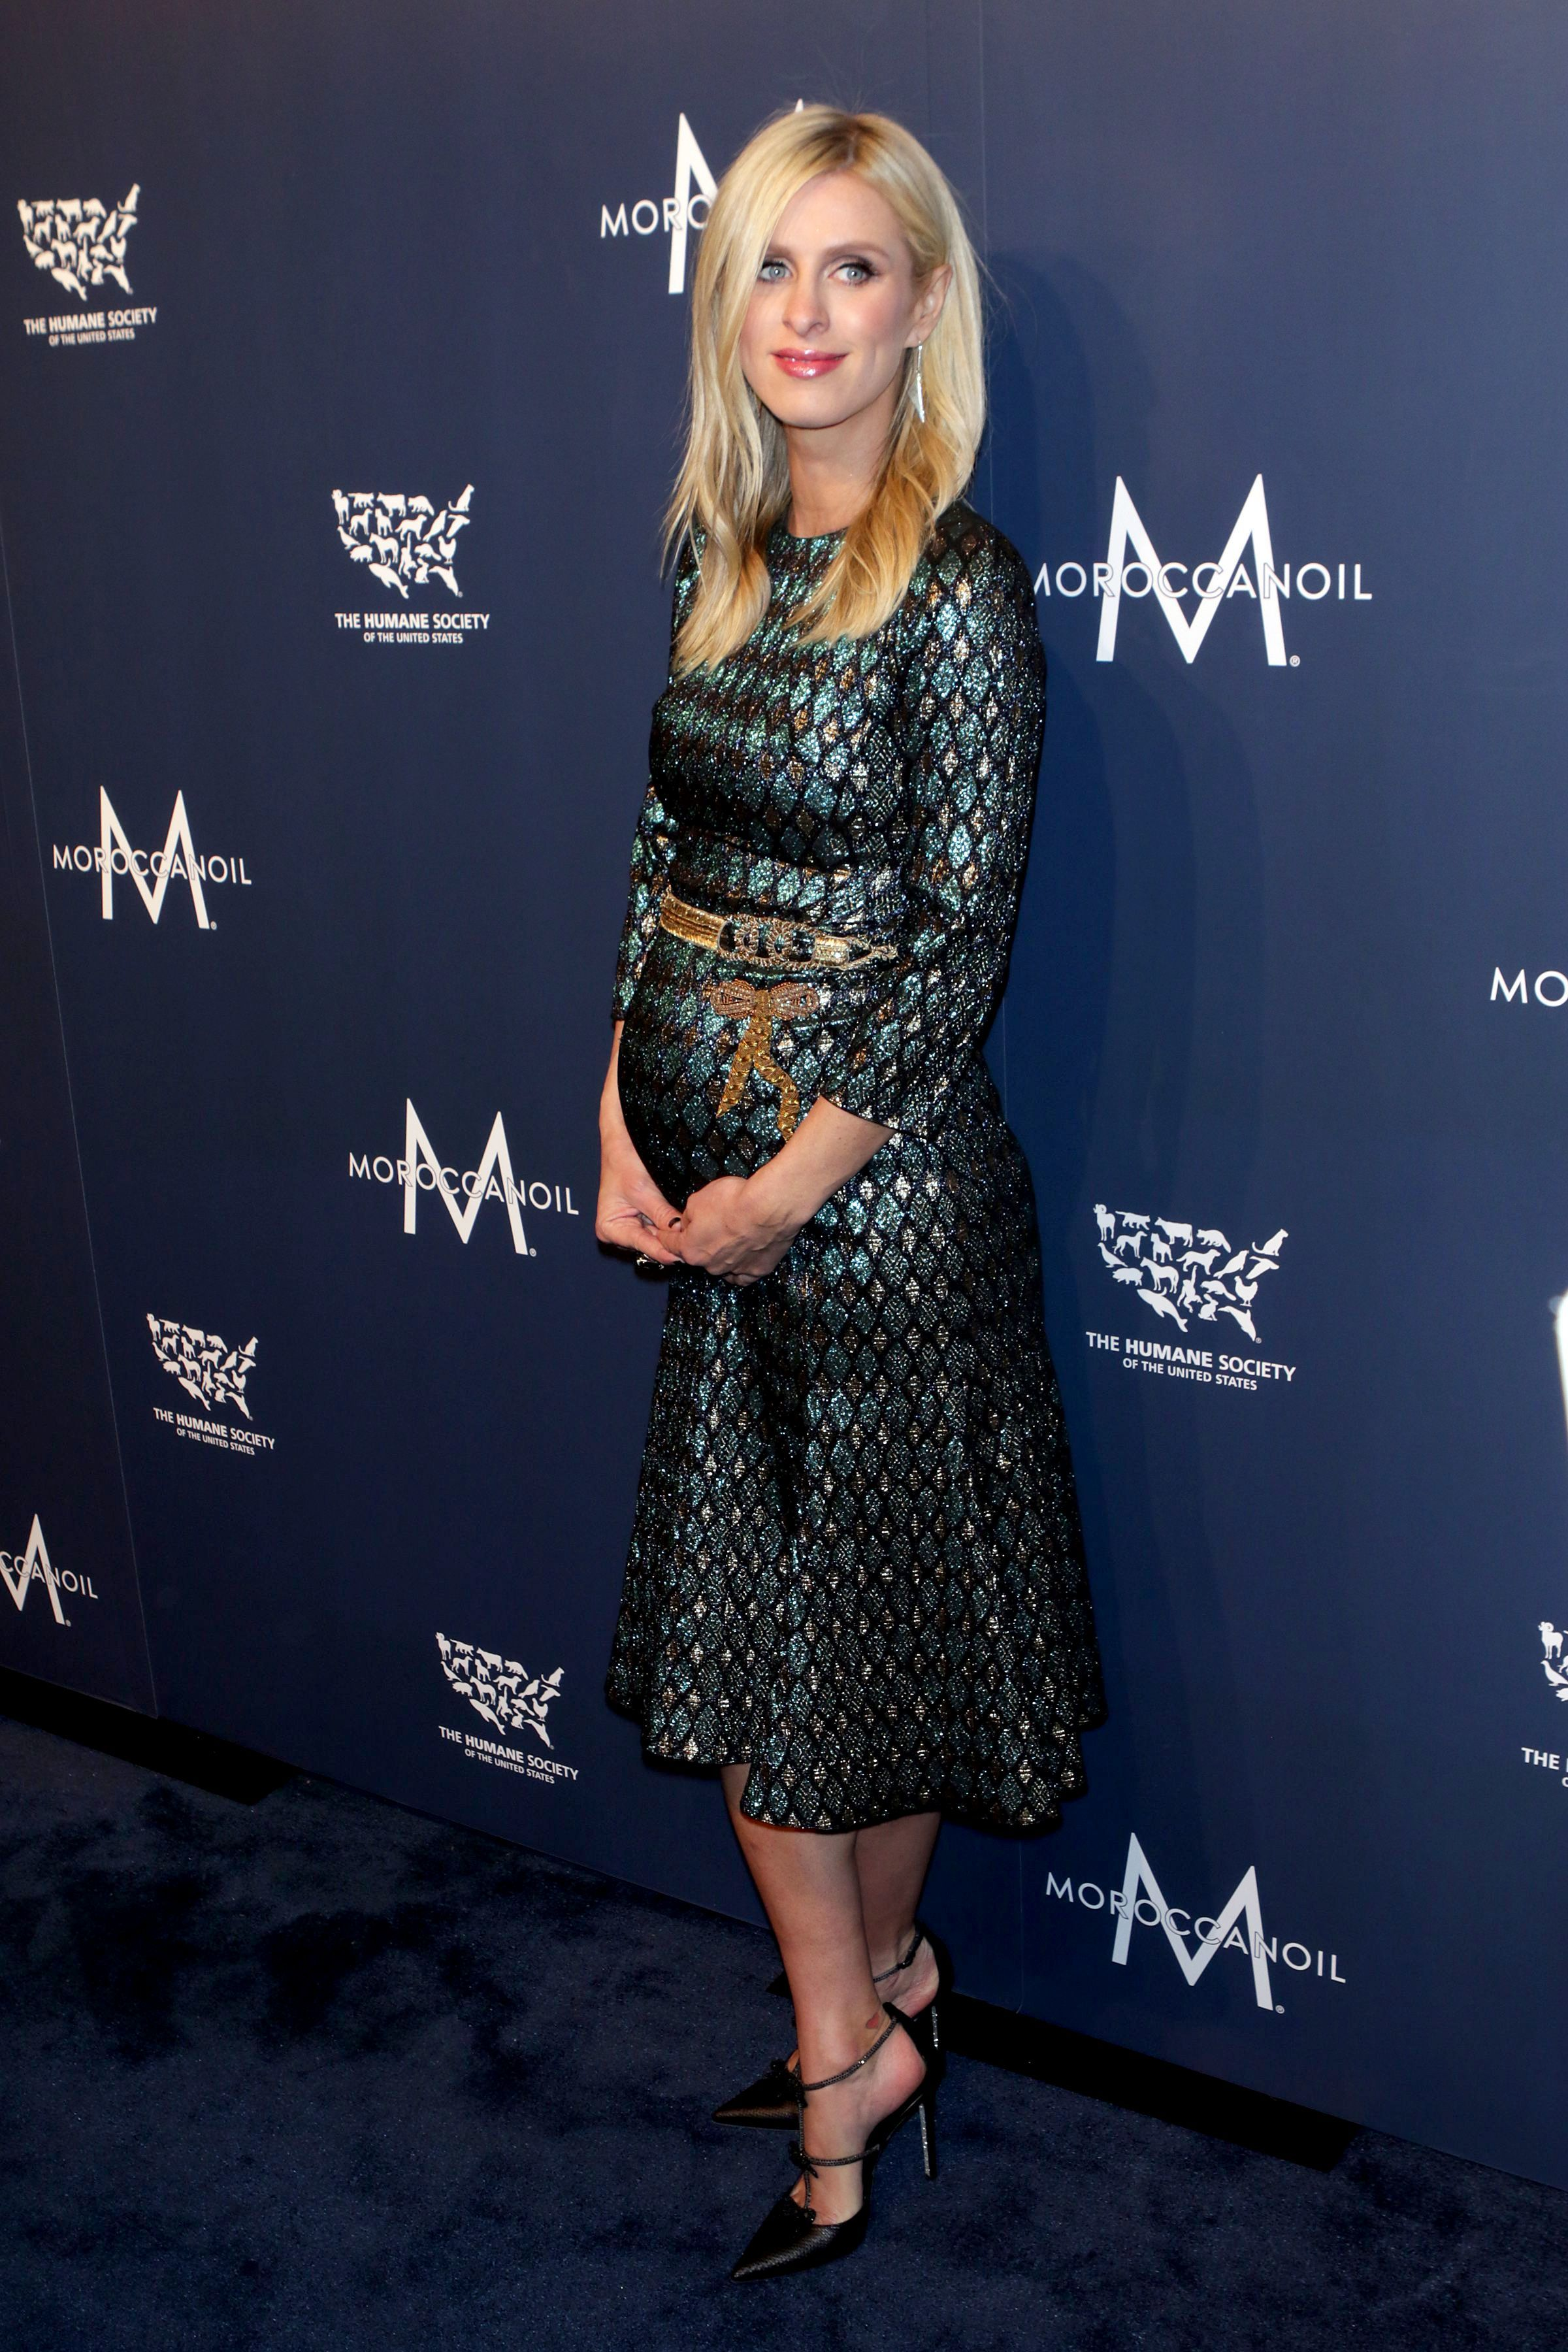 Nicky Hilton attends The Humane Society To the Rescue! Gala in New York on Nov. 10, 2017.